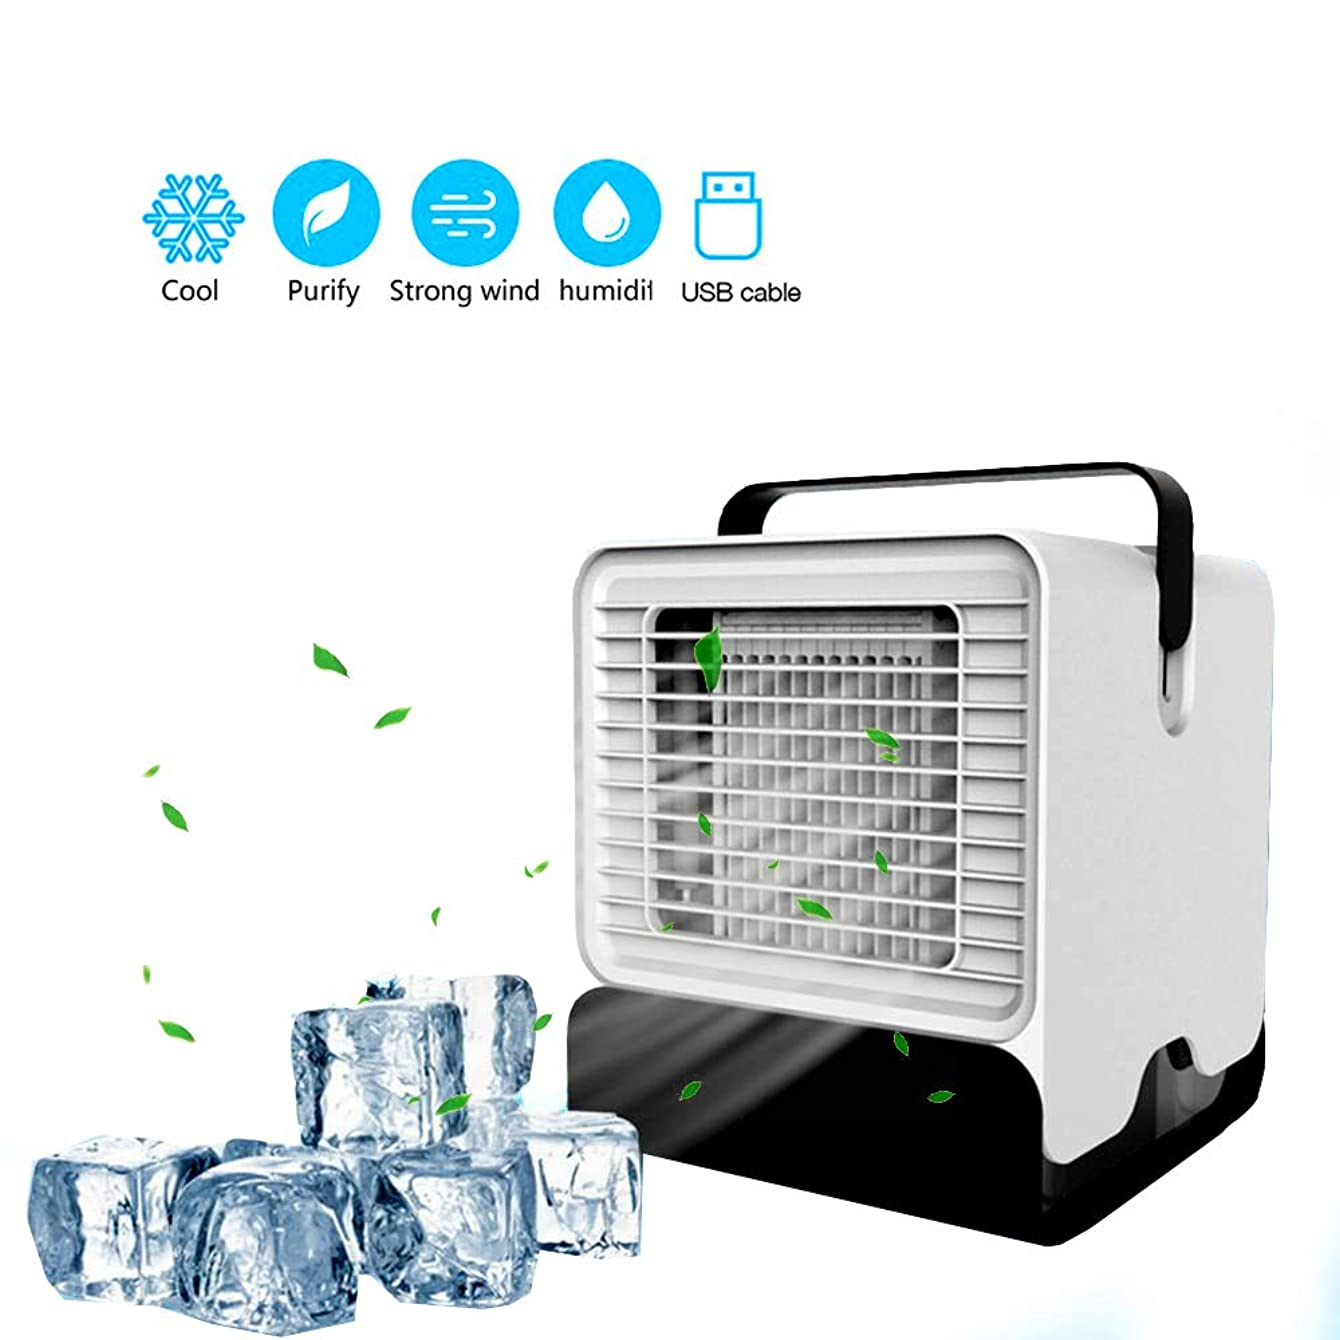 Tenlso Portable Air Conditioner, 3 in 1 Mini USB Personal Space Air Cooler Humidifier Purifier Desktop Cooling Fan with Led Light & Handle, Quiet Air Table Fan for Home Room Office